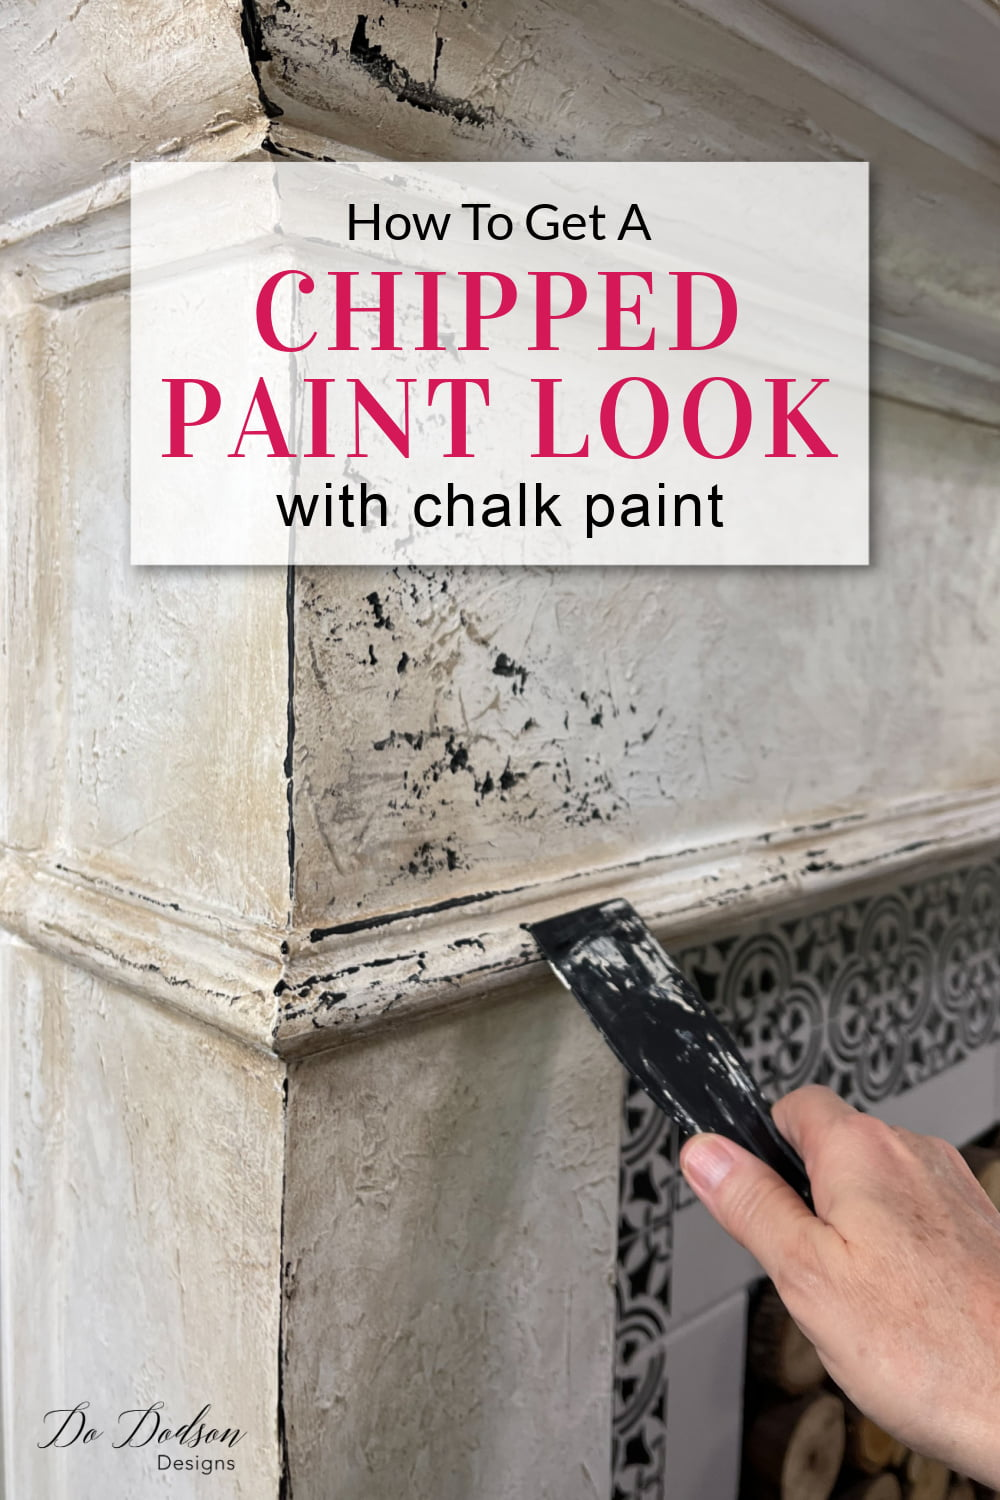 How To Get A DIY Chipped Paint Look - Fireplace Mantel Makeover